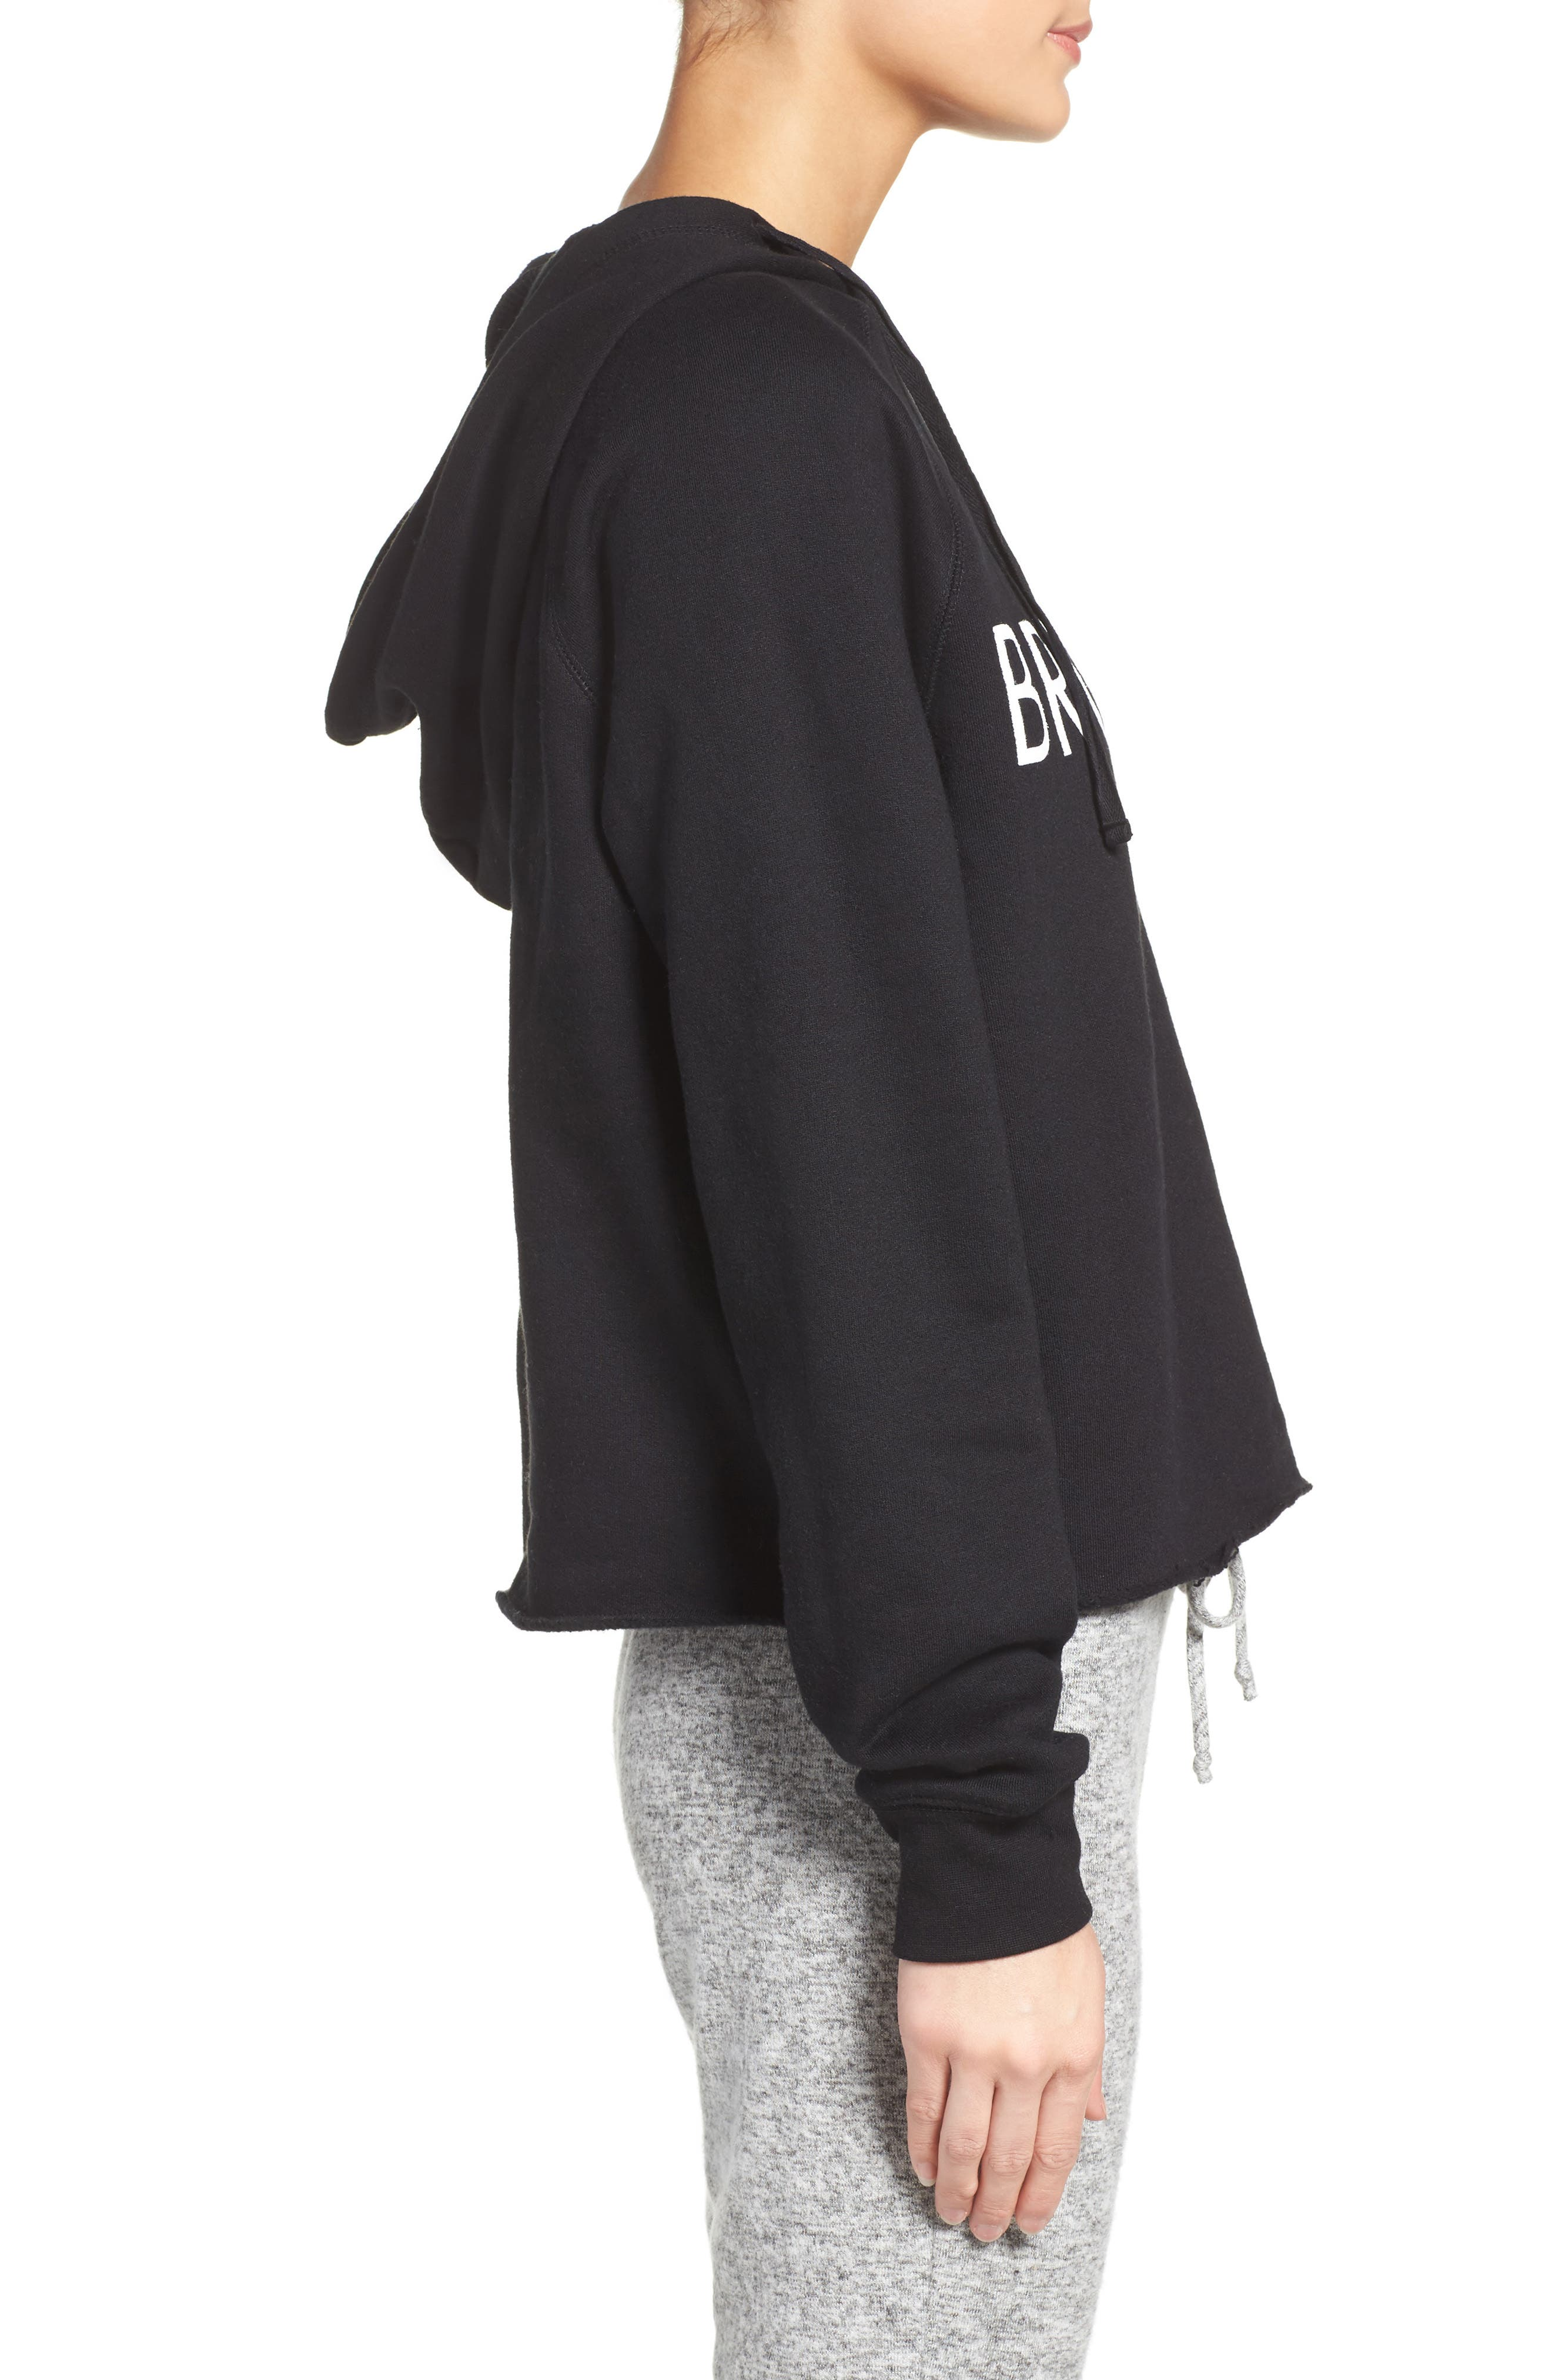 Brunette Lounge Hoodie,                             Alternate thumbnail 3, color,                             001